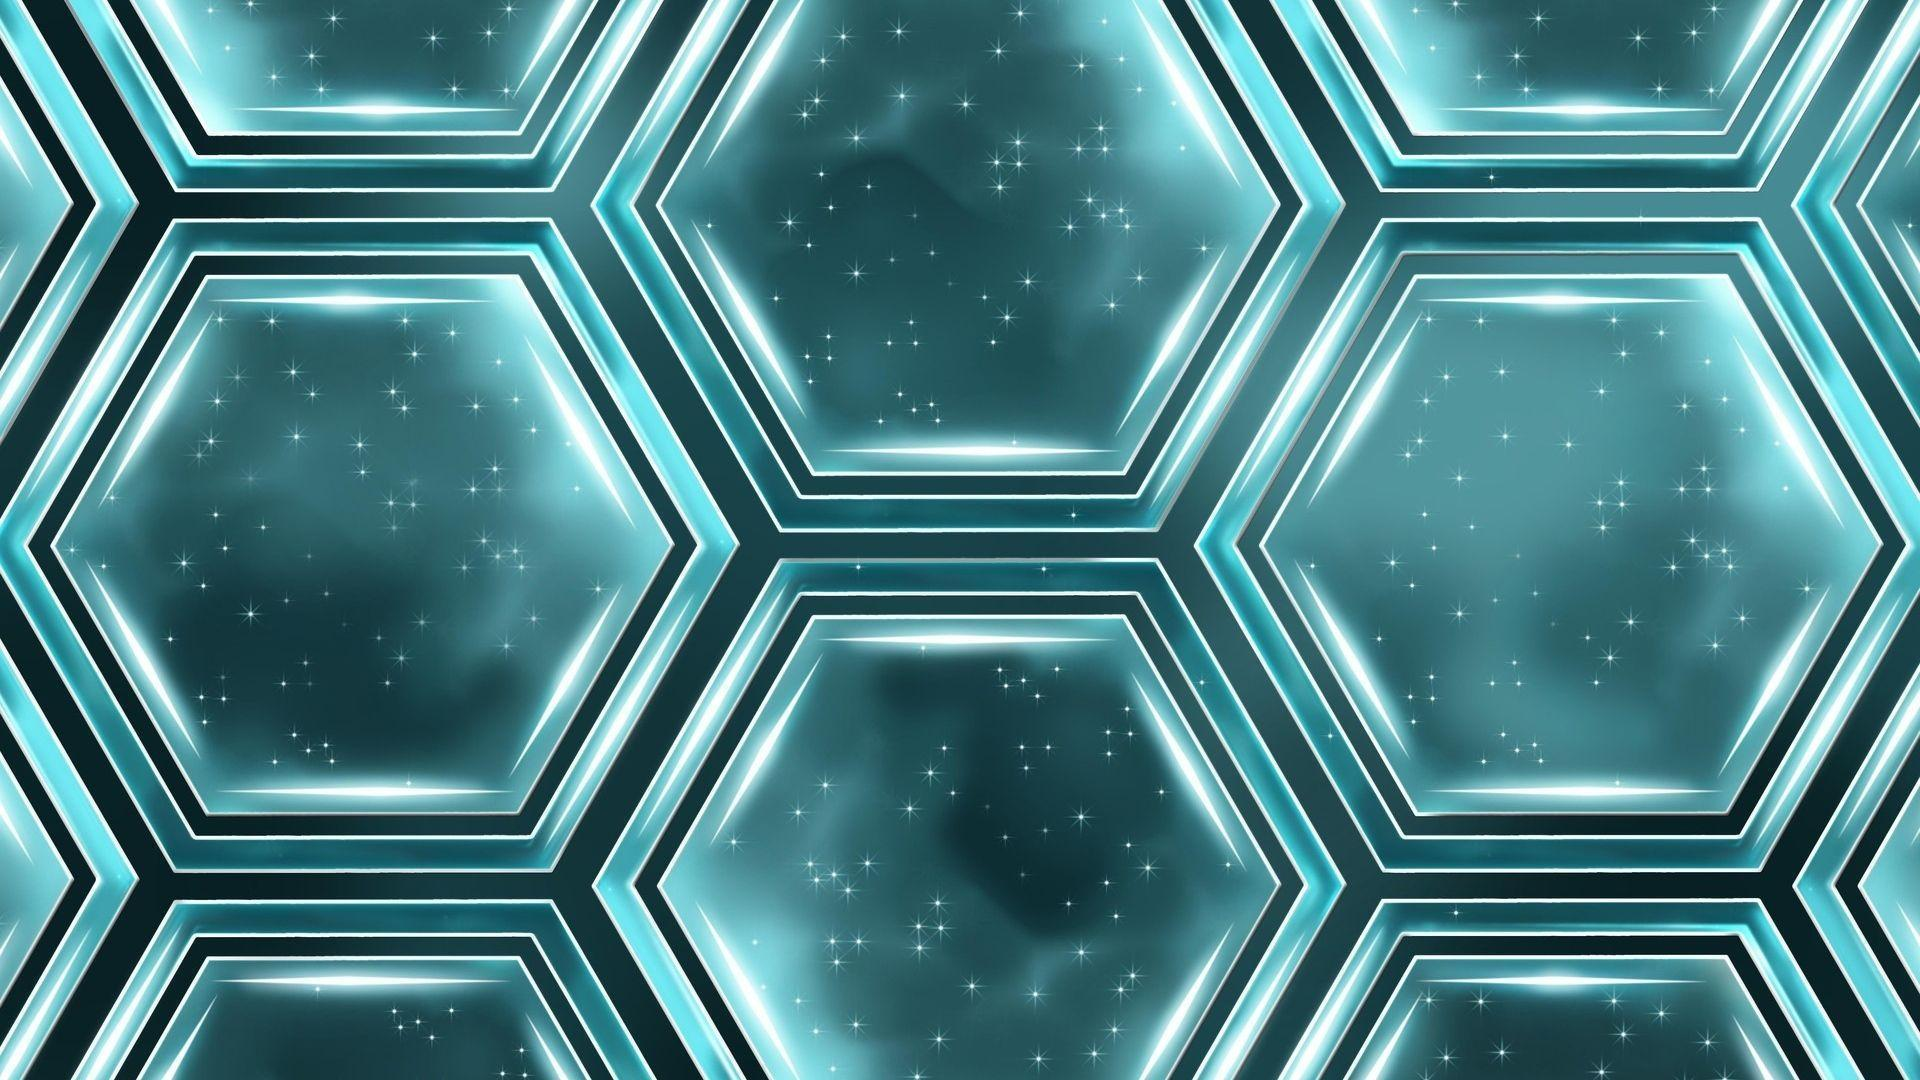 Full HD 1080p Hexagon Wallpapers HD, Desktop Backgrounds 1920x1080 ...